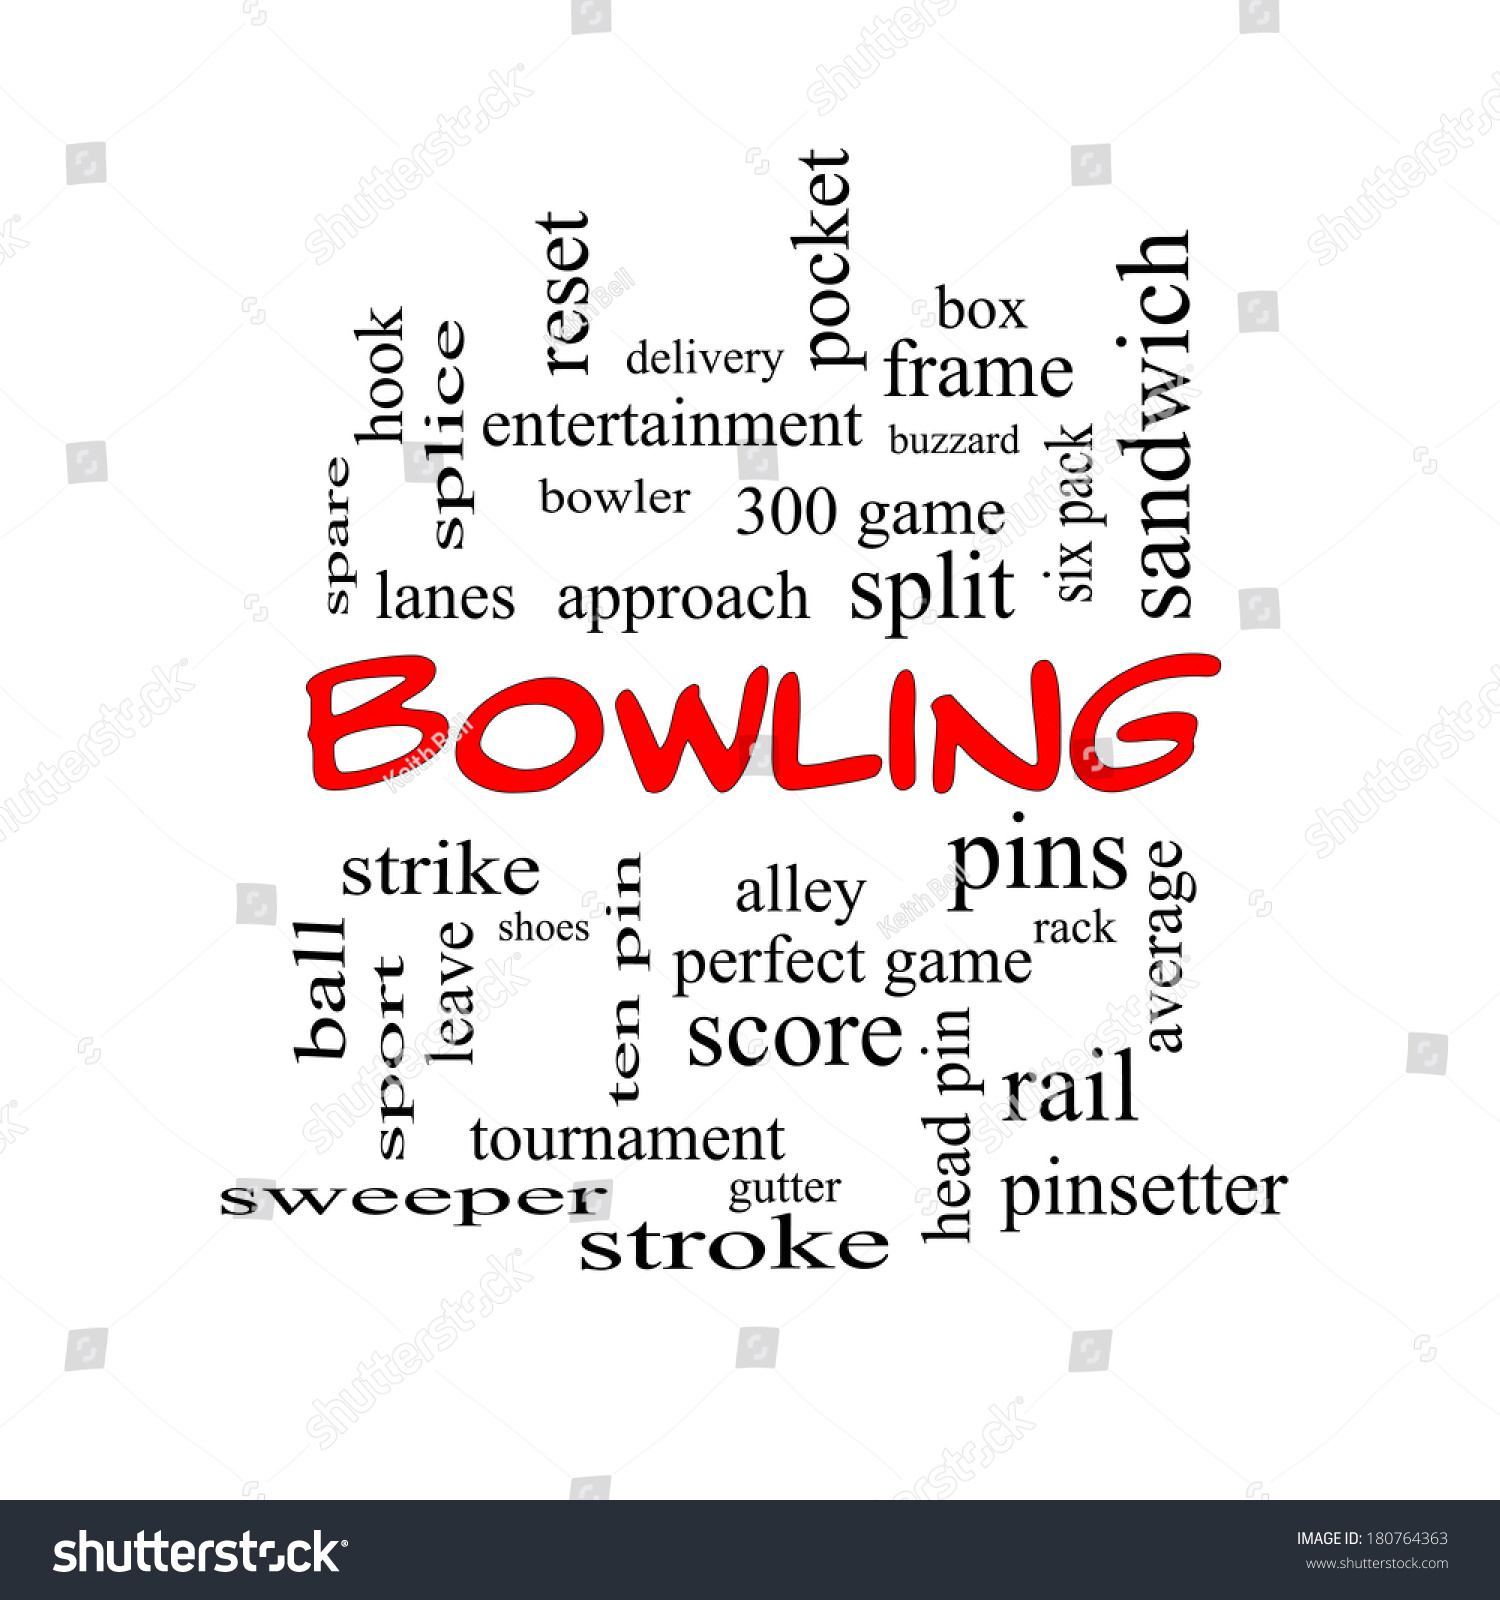 Bowling Word Cloud Concept Red Caps Stock Illustration 180764363 ...